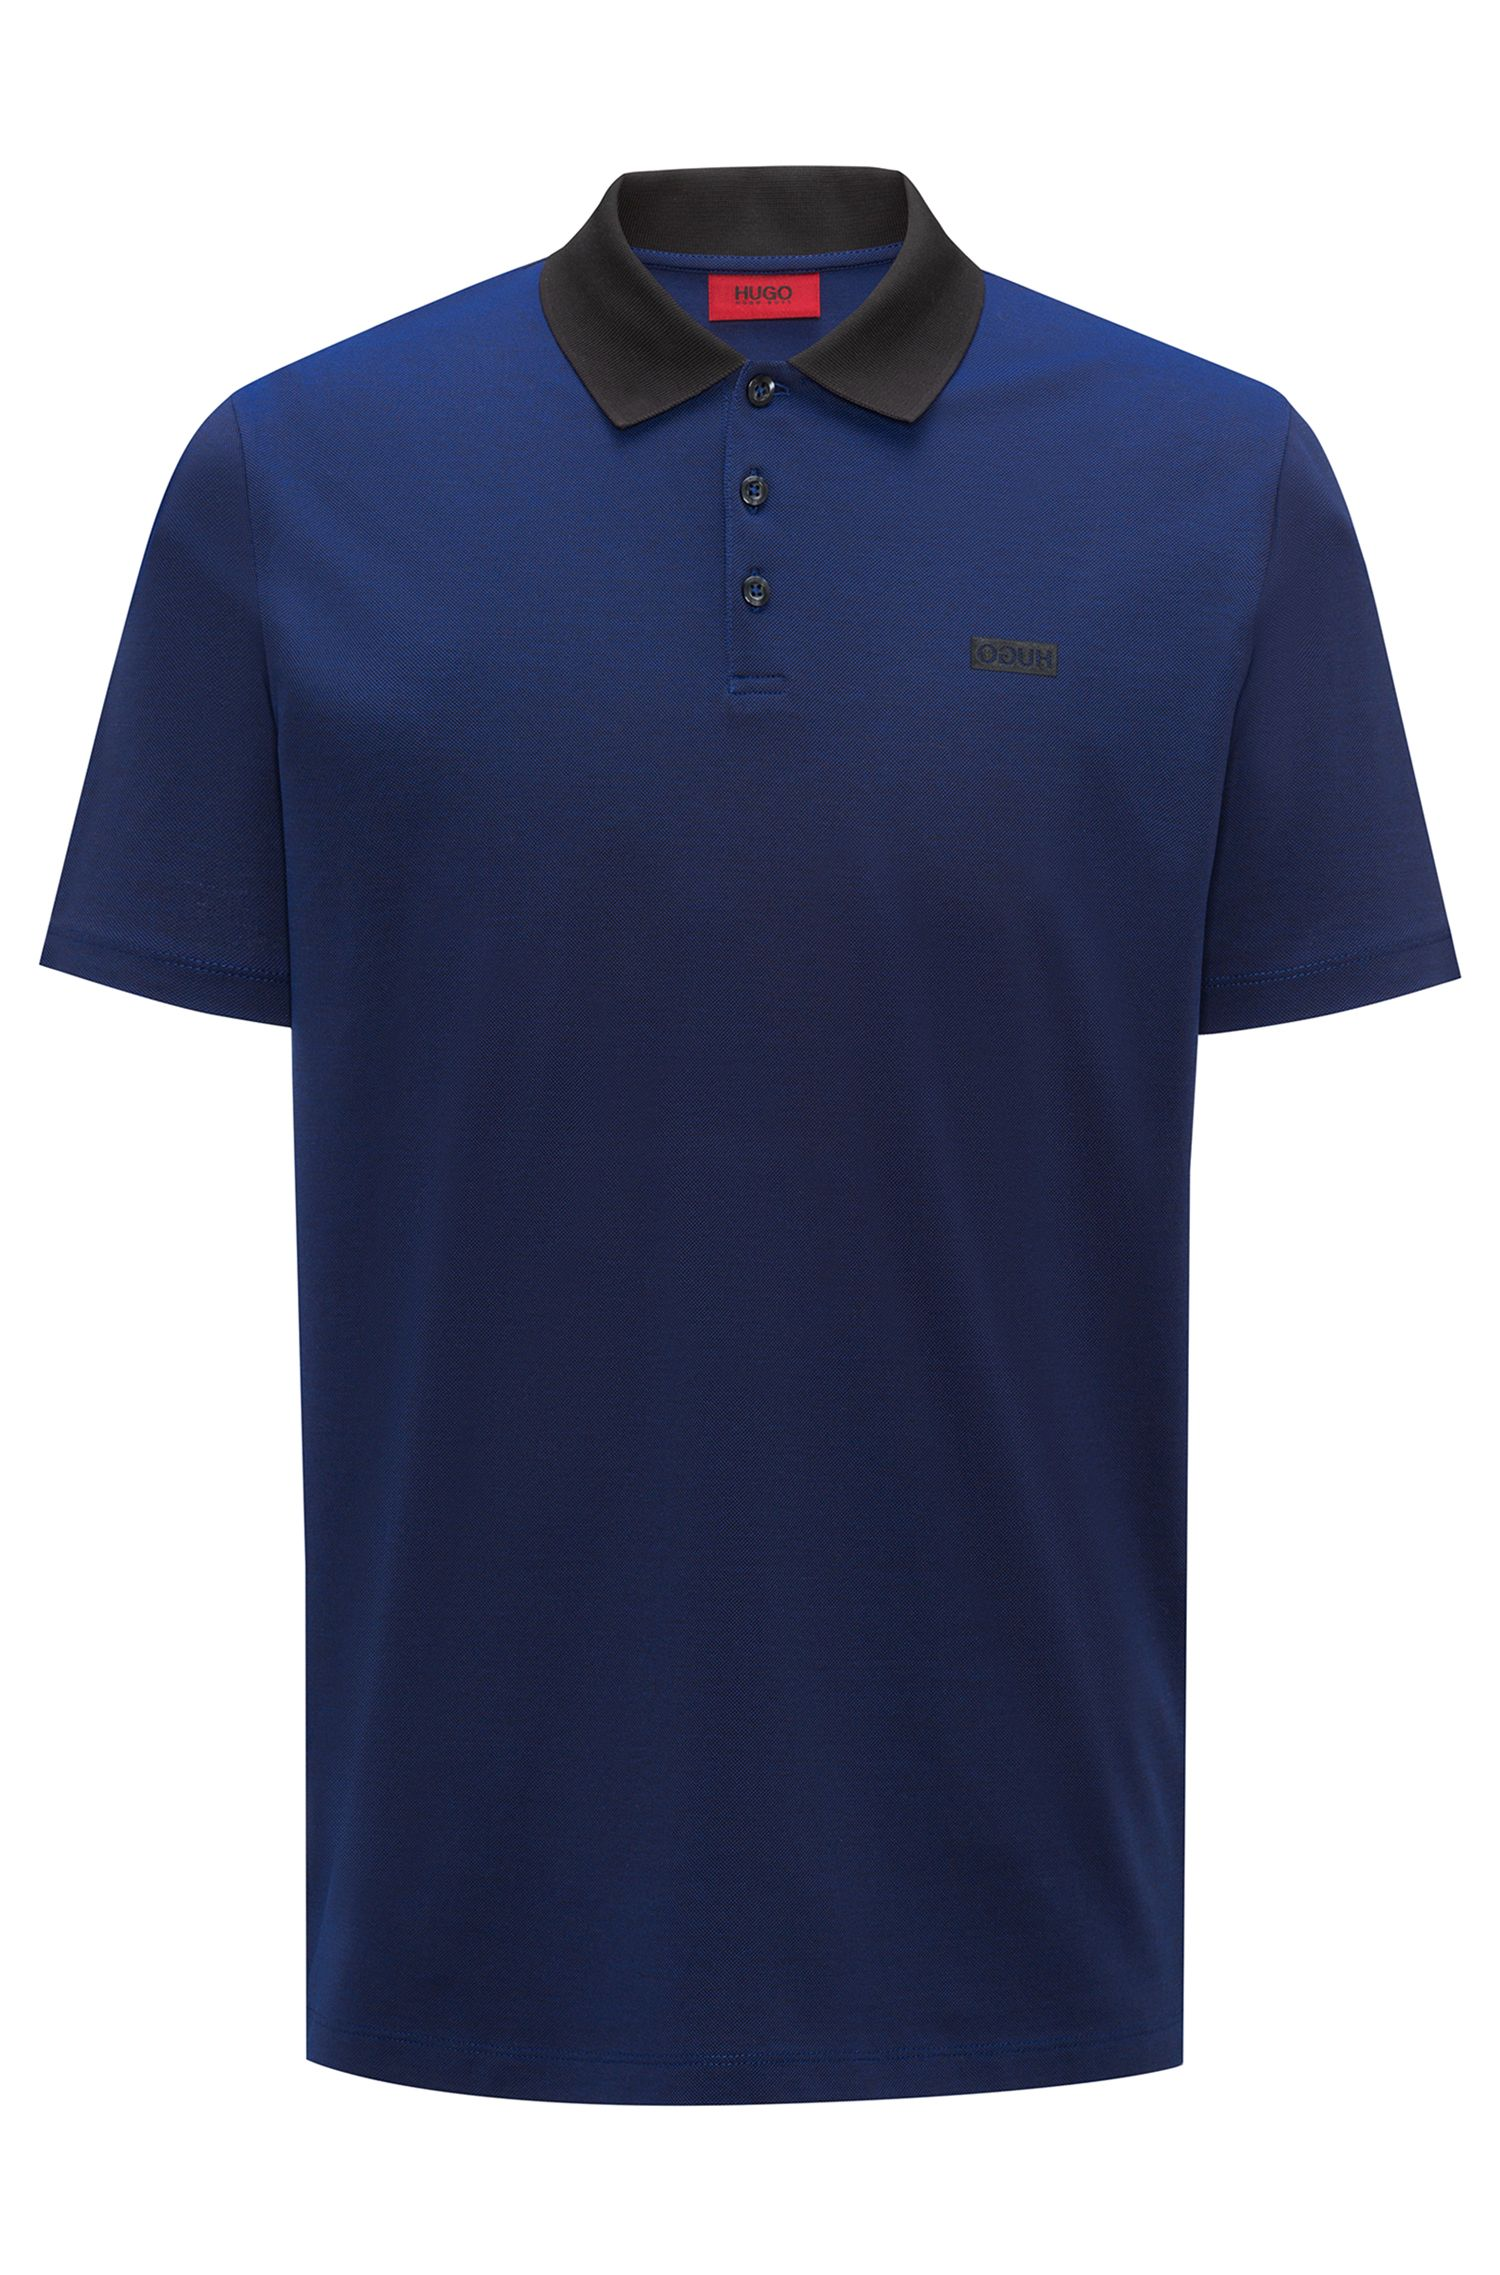 Polo shirt in Oxford cotton piqué with contrast collar